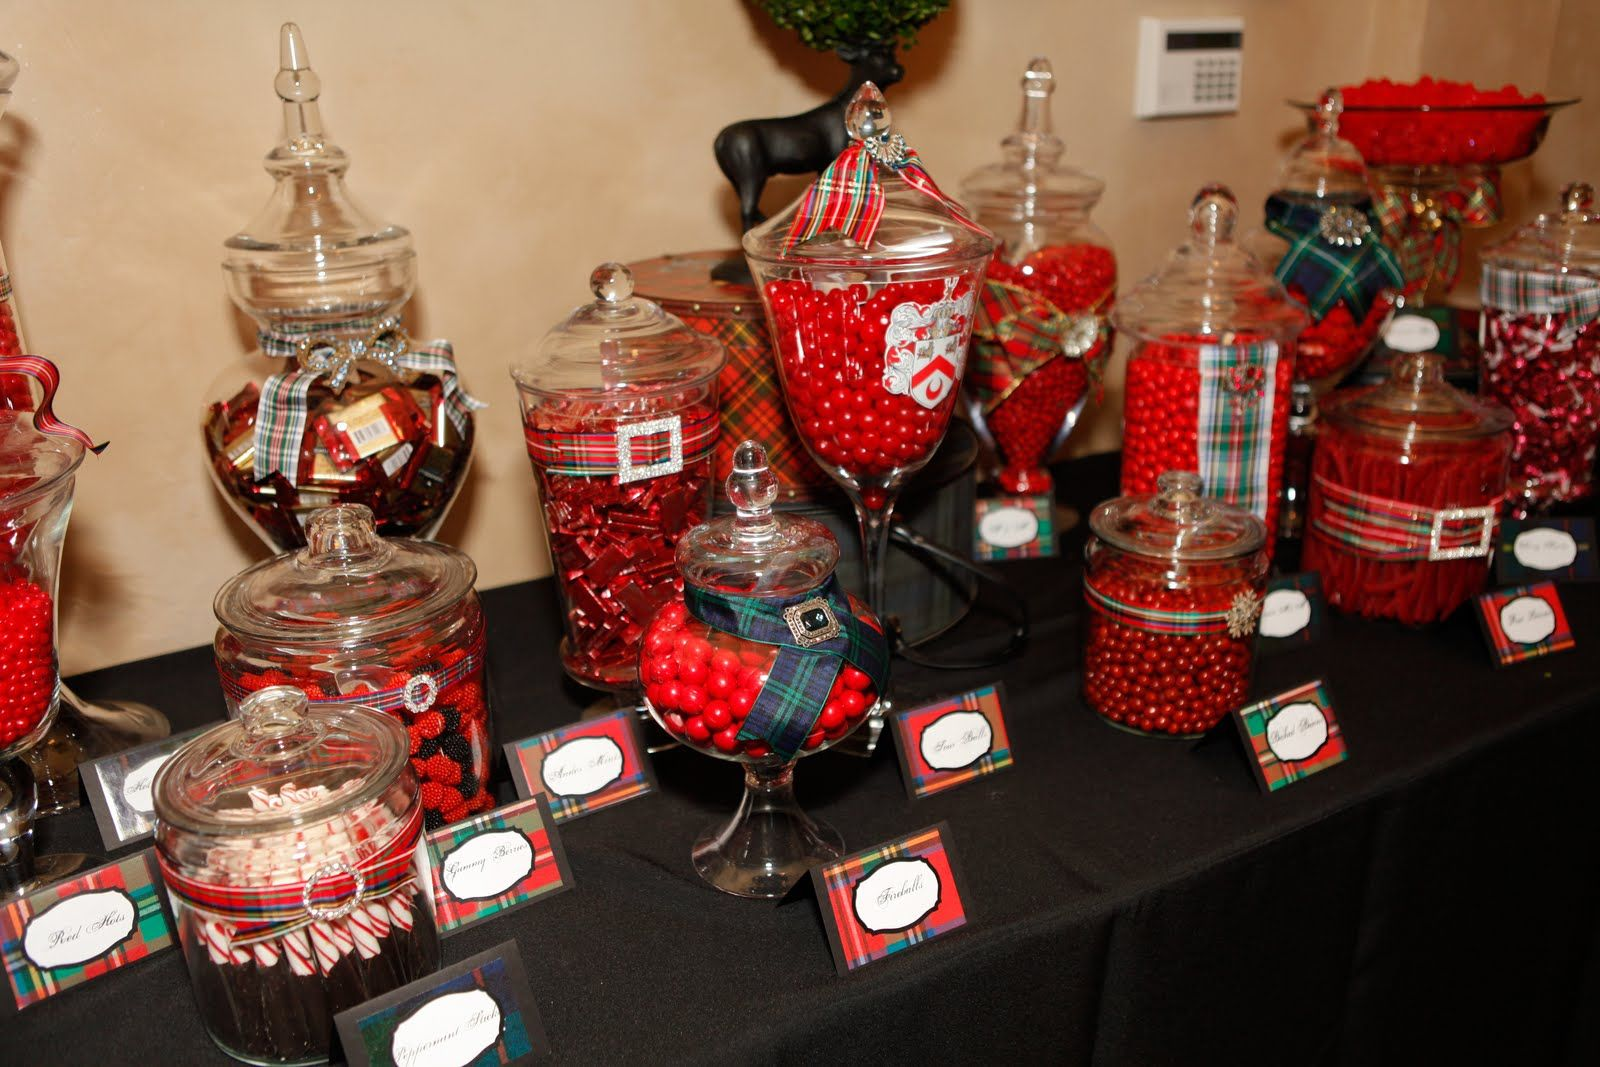 #wedding #reception #candy #table #red #creative More